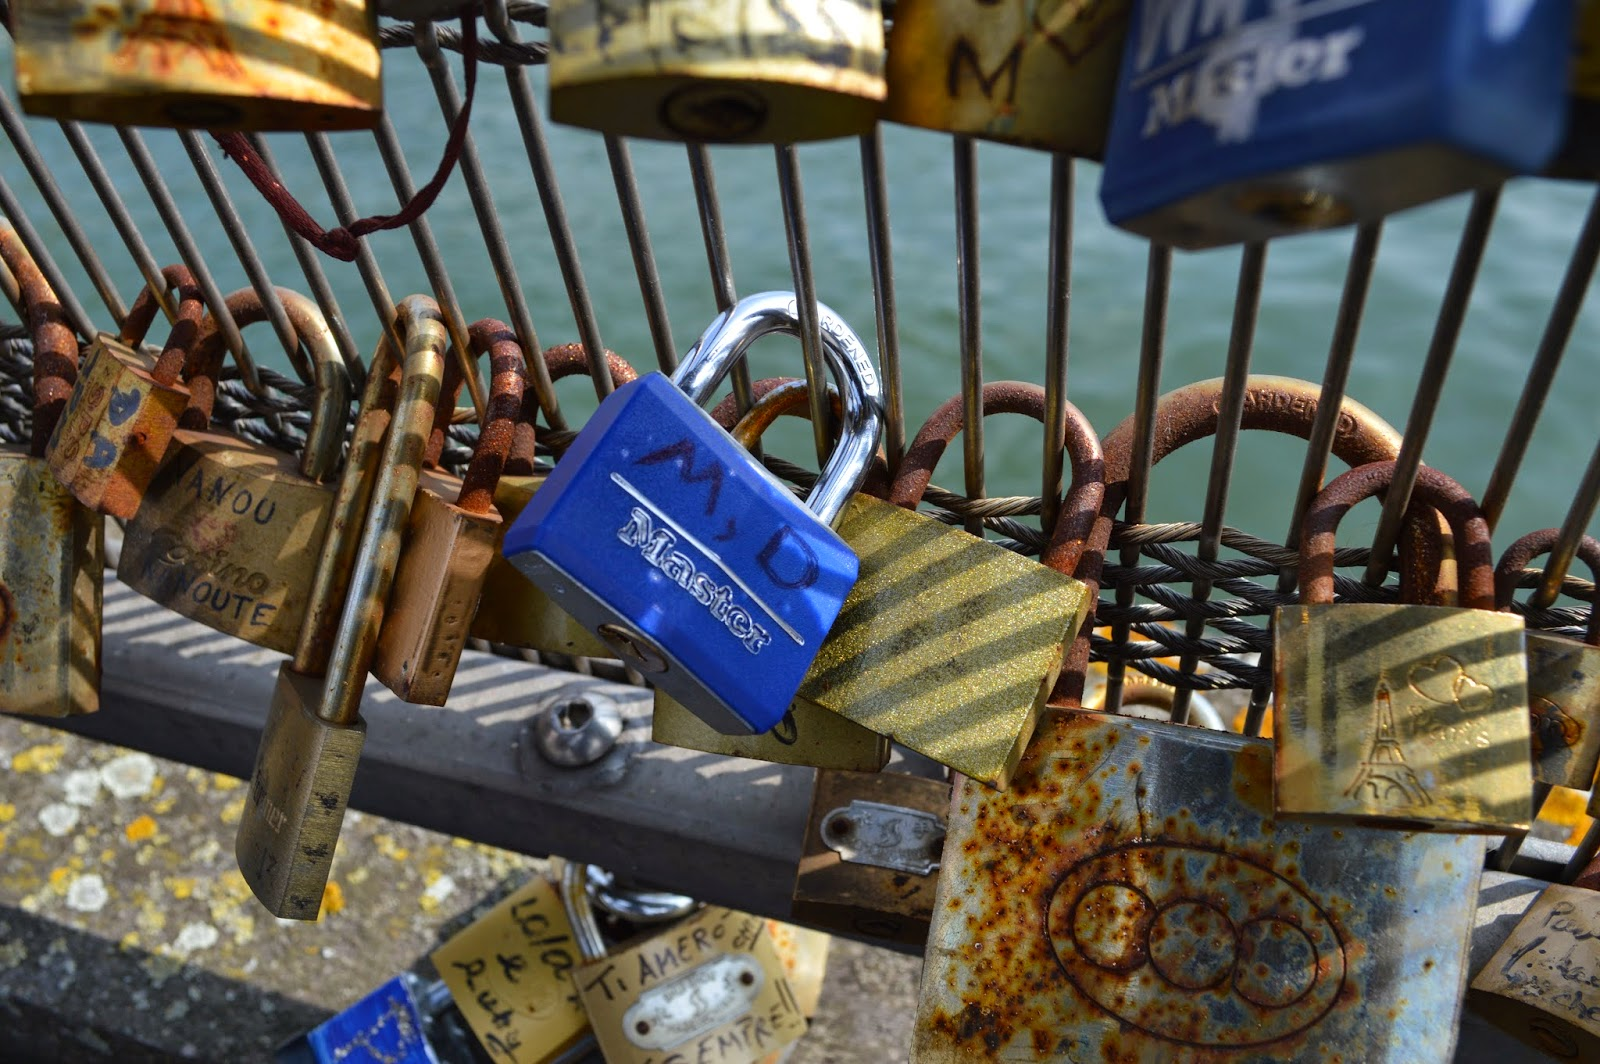 Marifer and David's Love lock. Paris